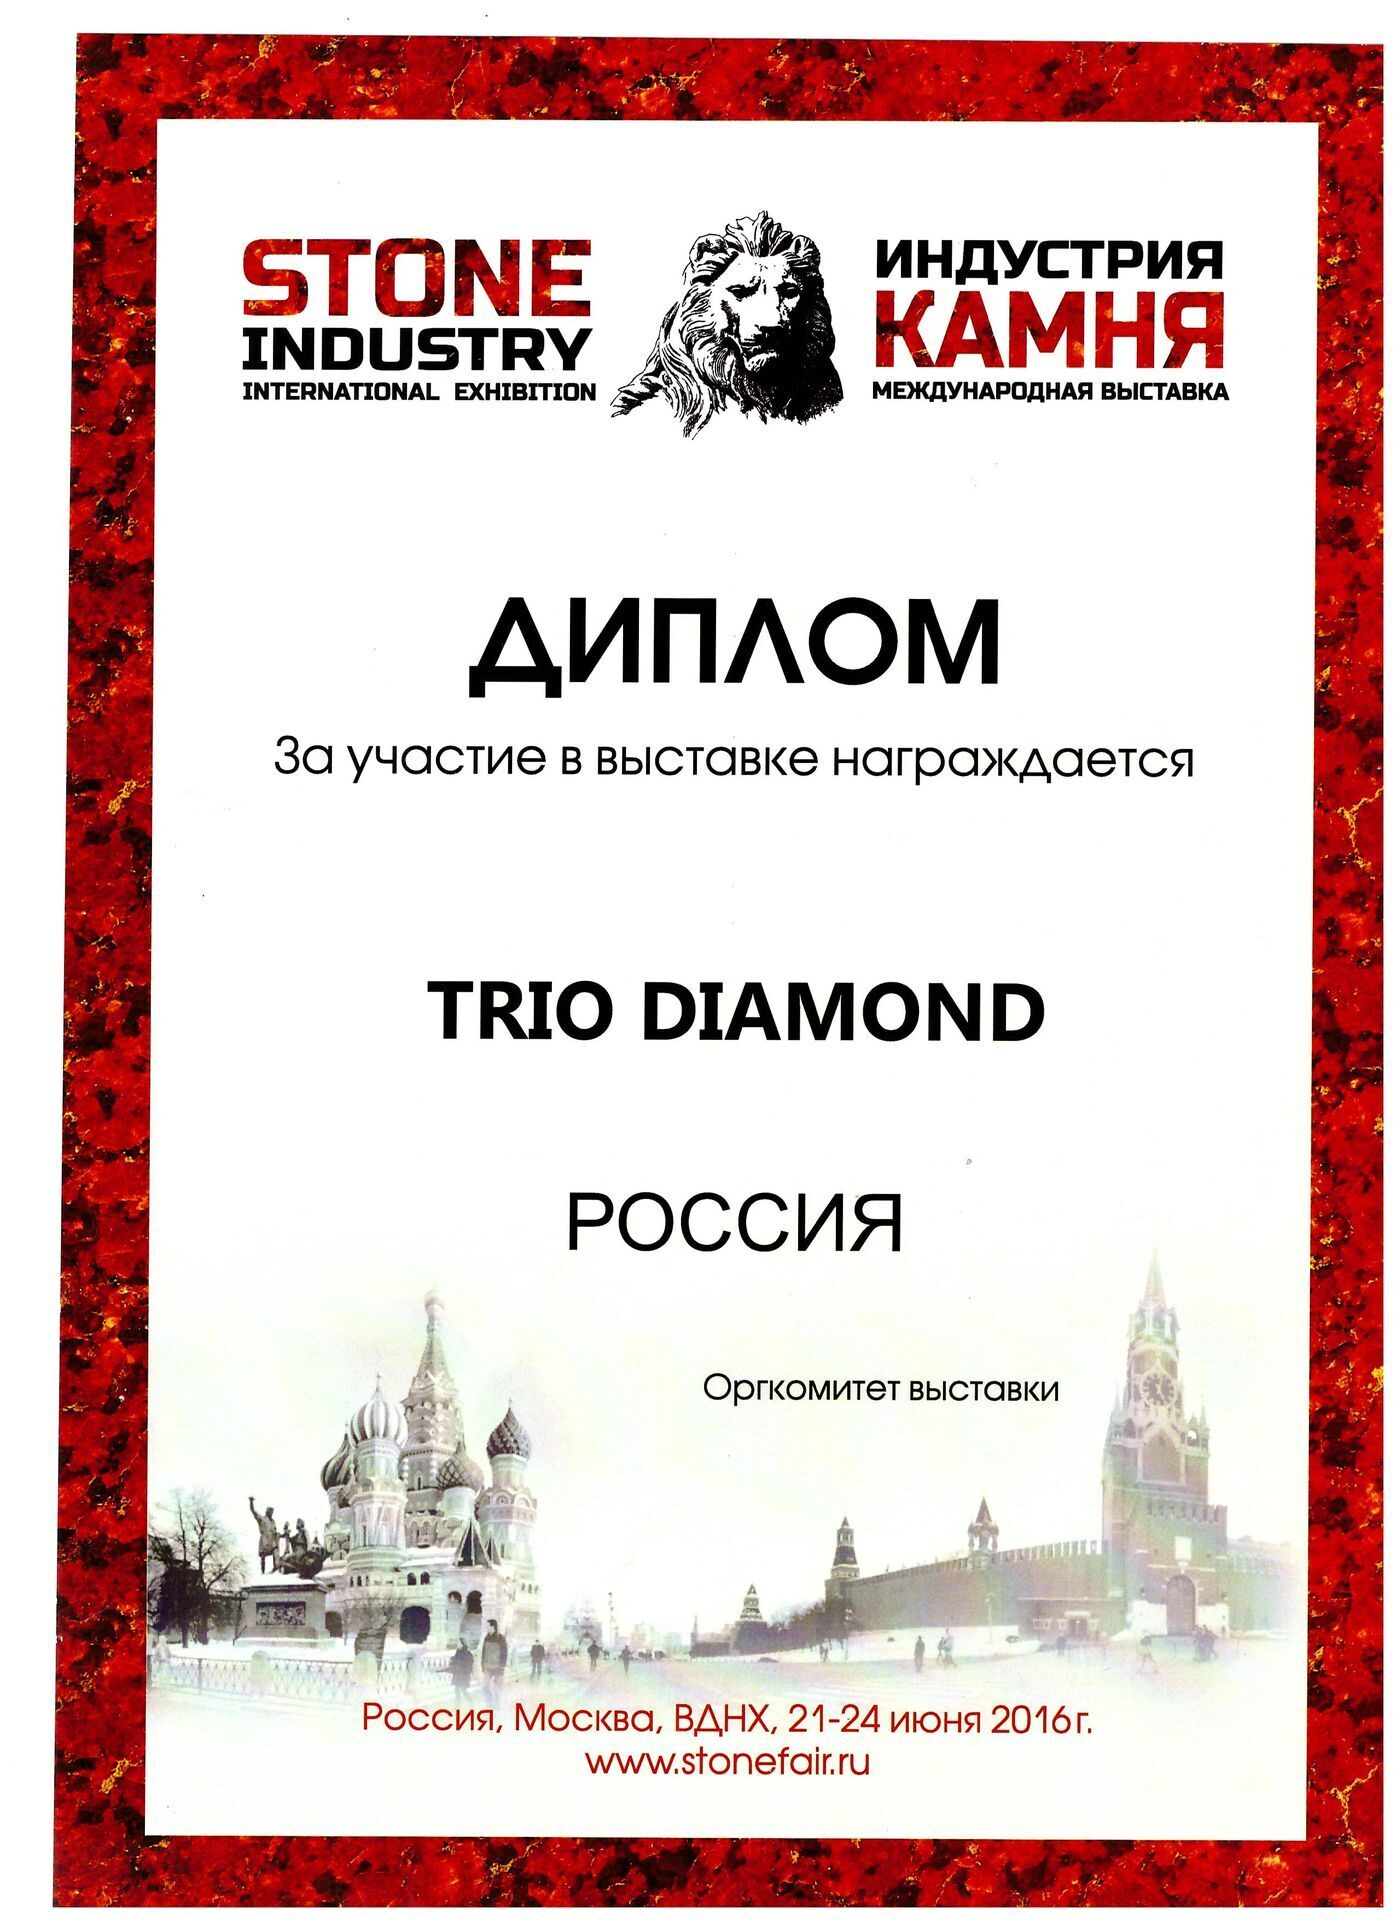 Trio Diamond Industry Stone 2016